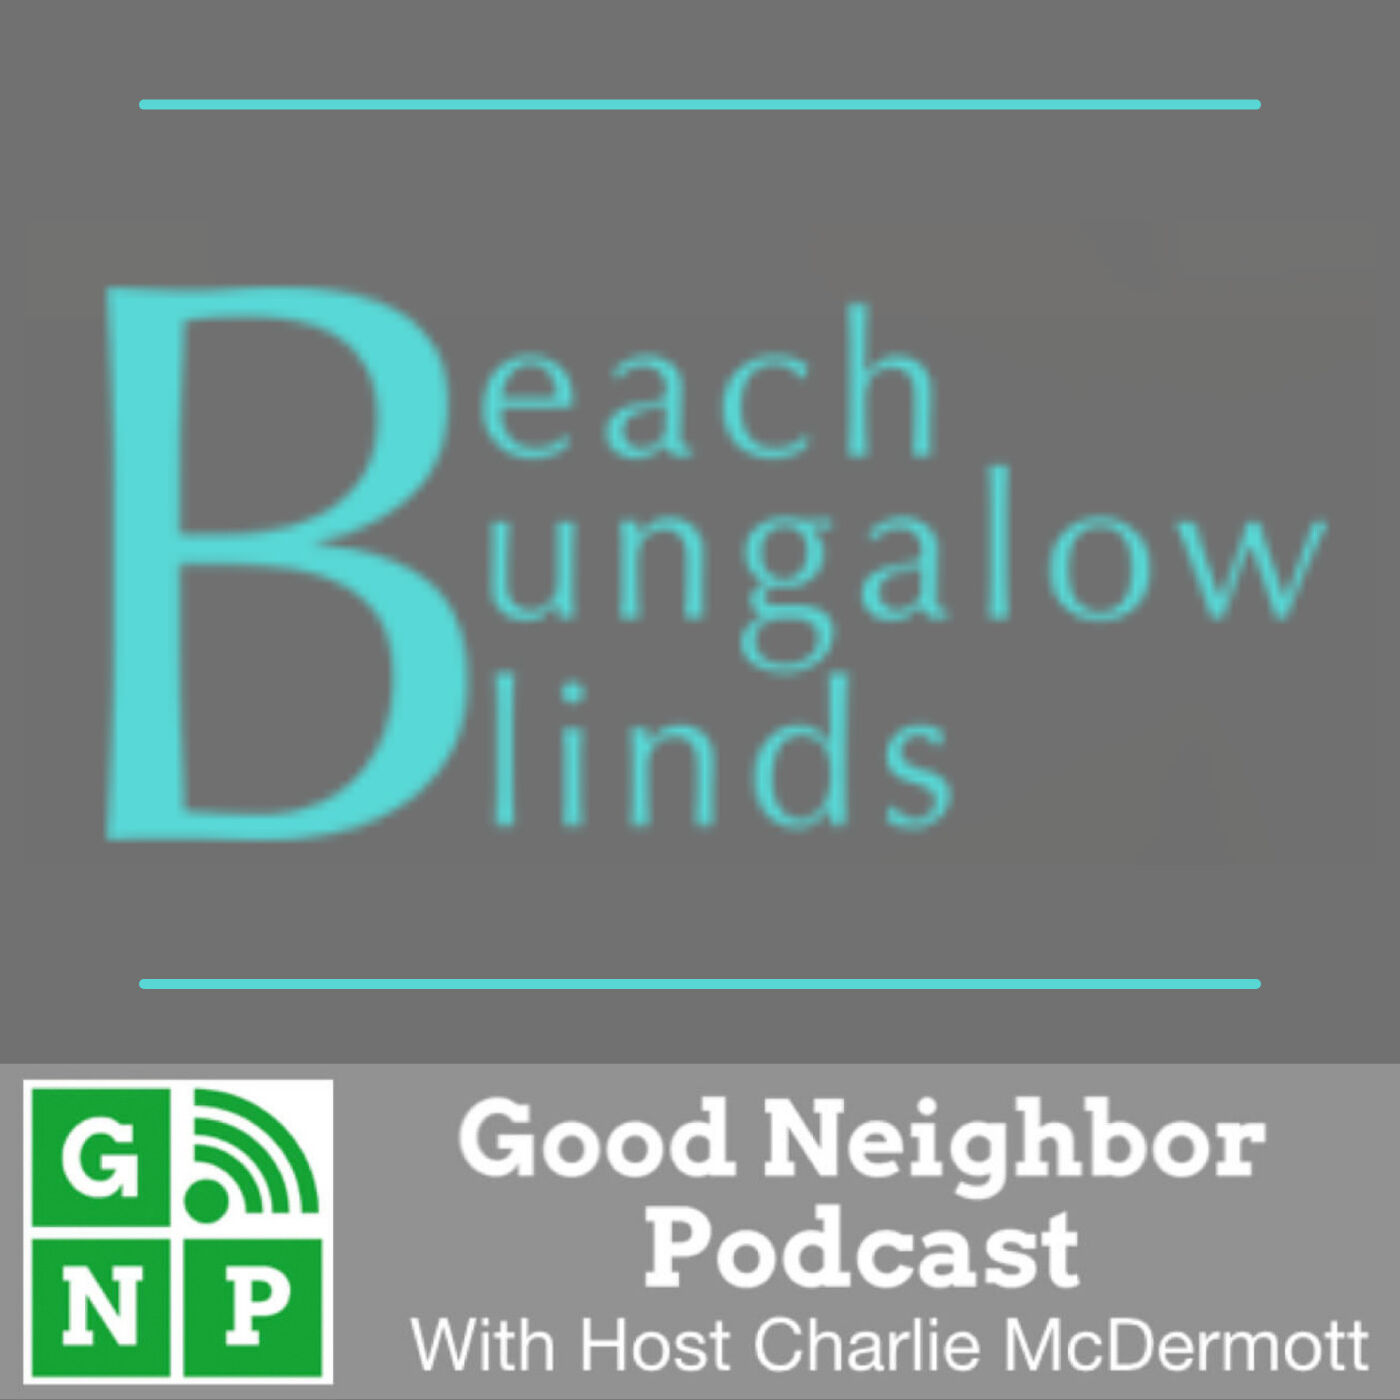 EP #442: Beach Bungalow Blinds with Maggie Kyle Petraits